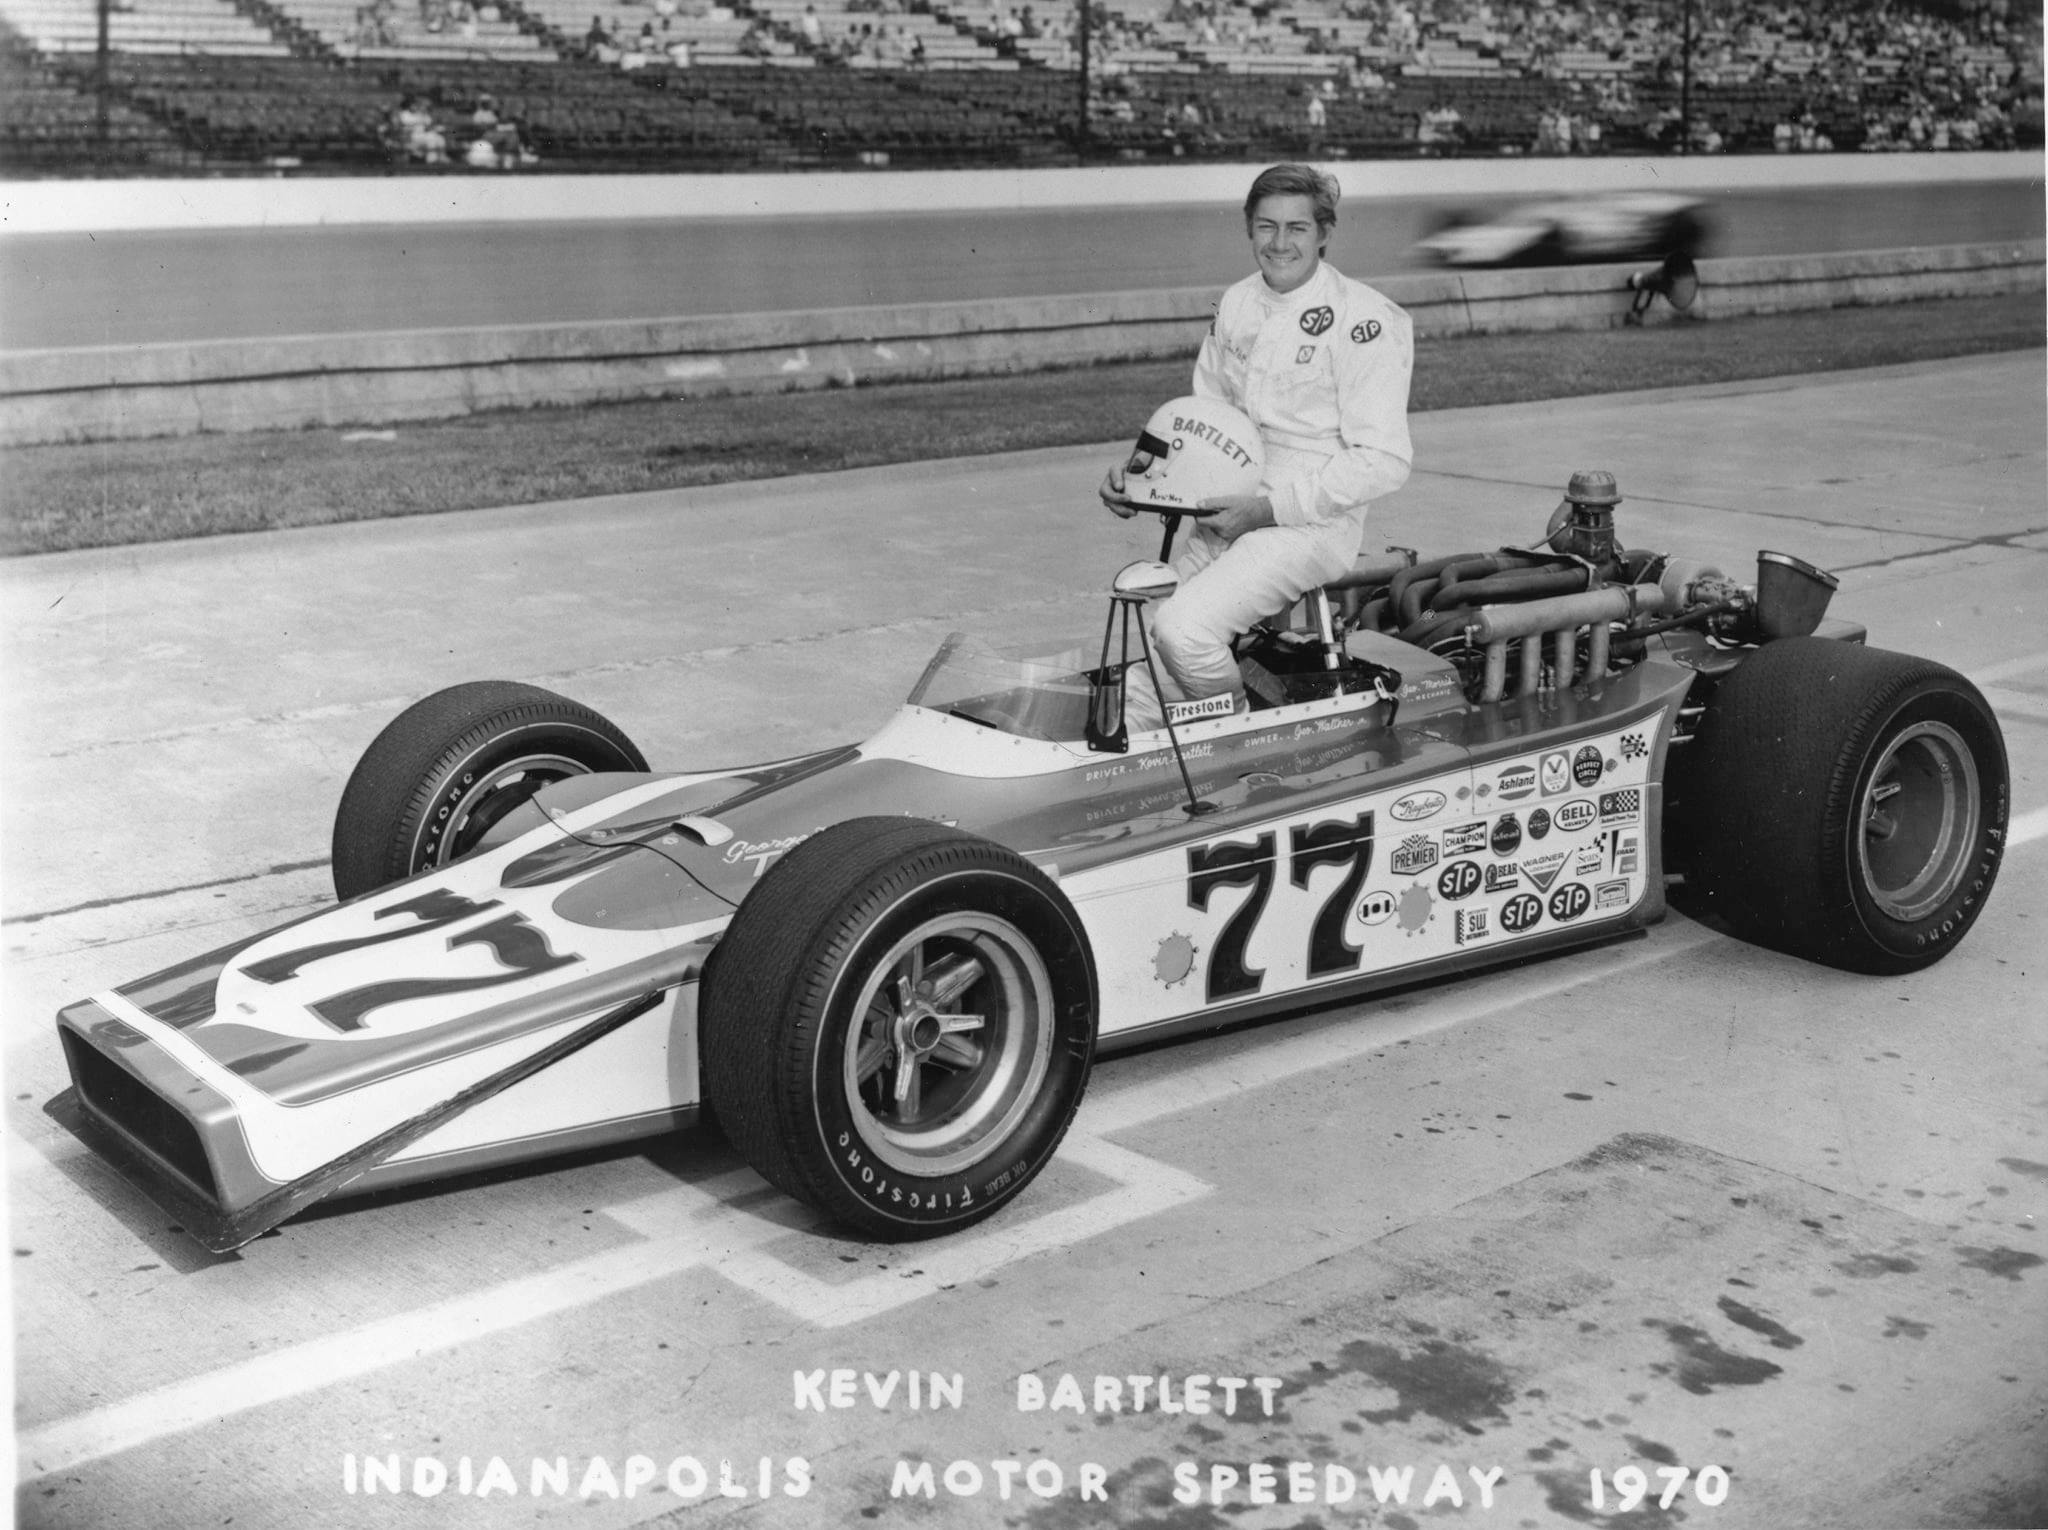 Bartlett remembers Indianapolis 500 on his 80th birthday - Speedcafe